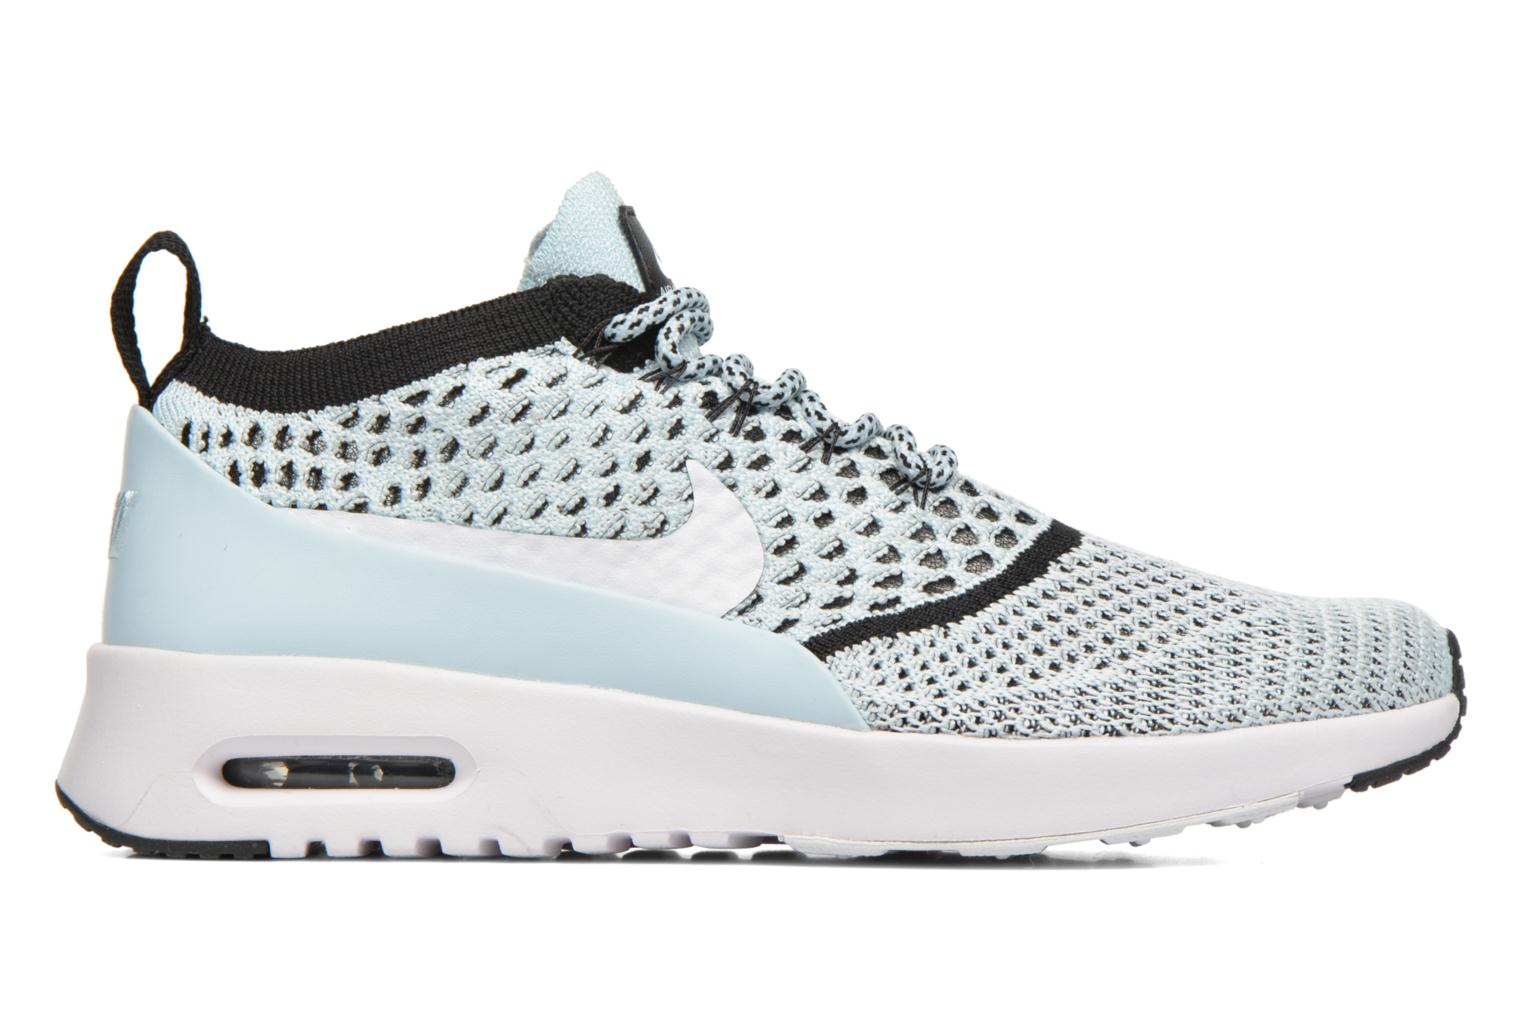 W Nike Air Max Thea Ultra Fk Glacier Blue/White-Black